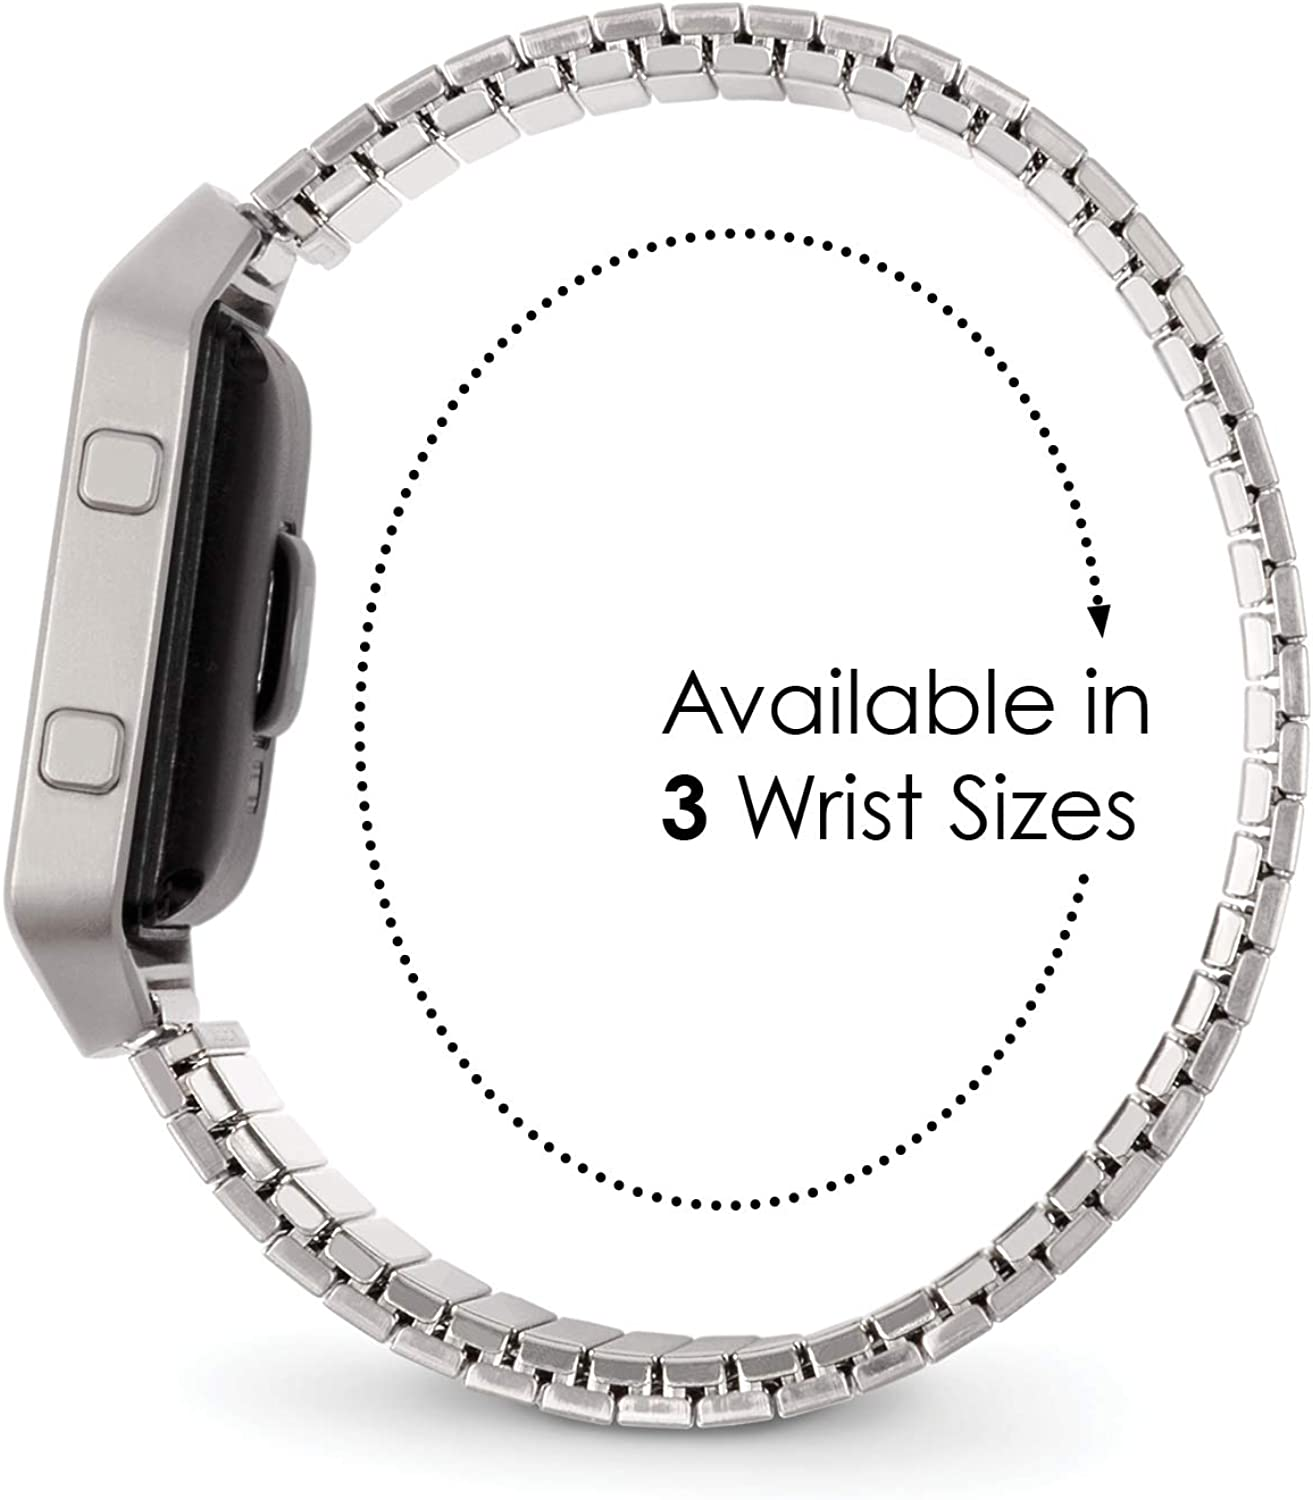 Twist-O-Flex Metal Expansion Stainless Steel Stretch Band Replacement for The Fitbit Blaze in Brushed Silver, Rose Gold and Black by Speidel Brushed